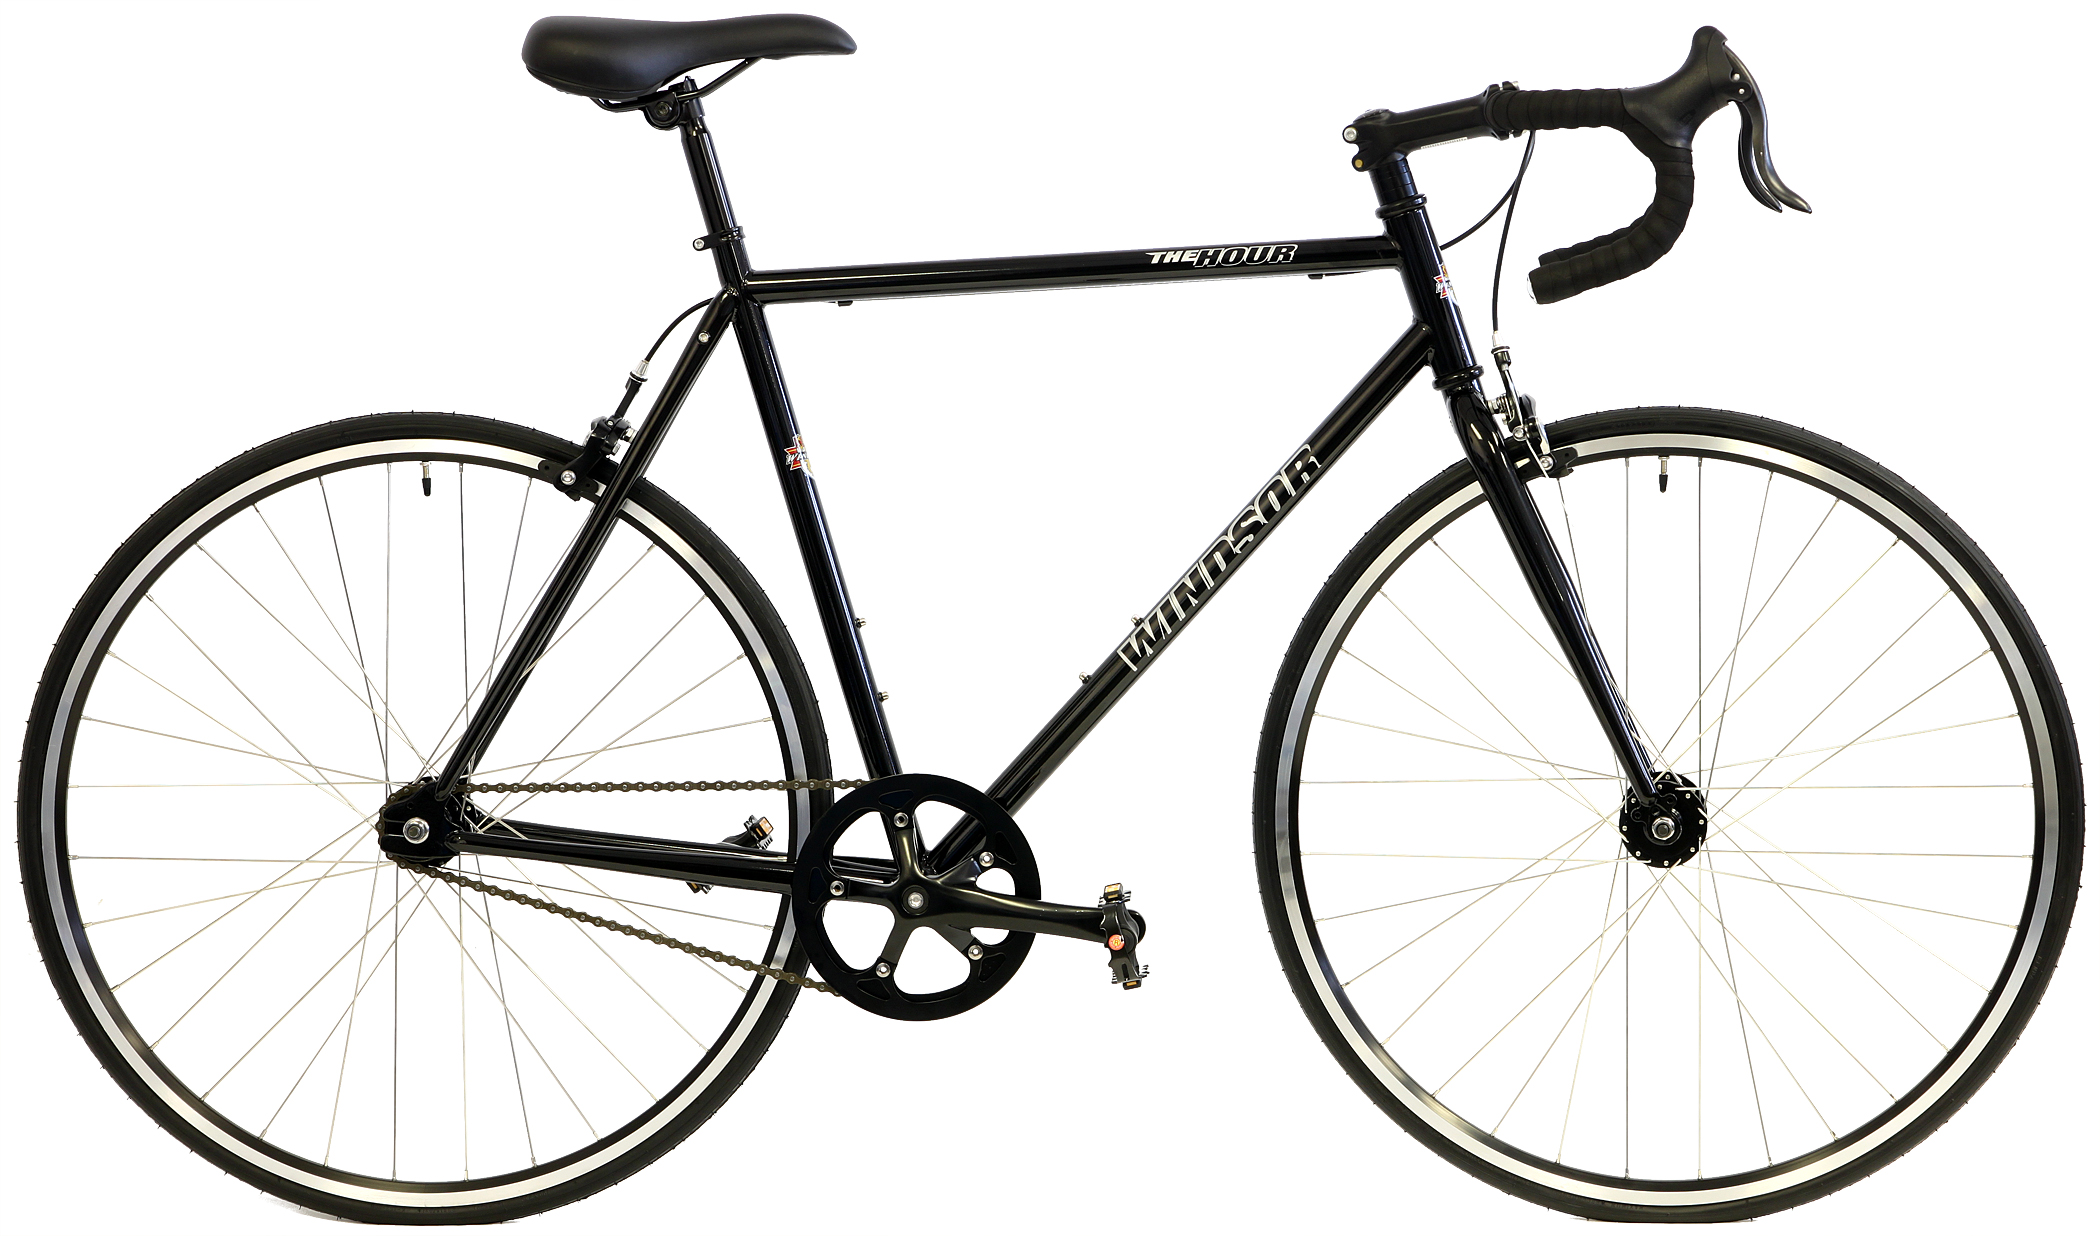 HOUR PLUS - 1sp CHROMOLY ROAD BIKE w/ FLIP/FLOP HUB